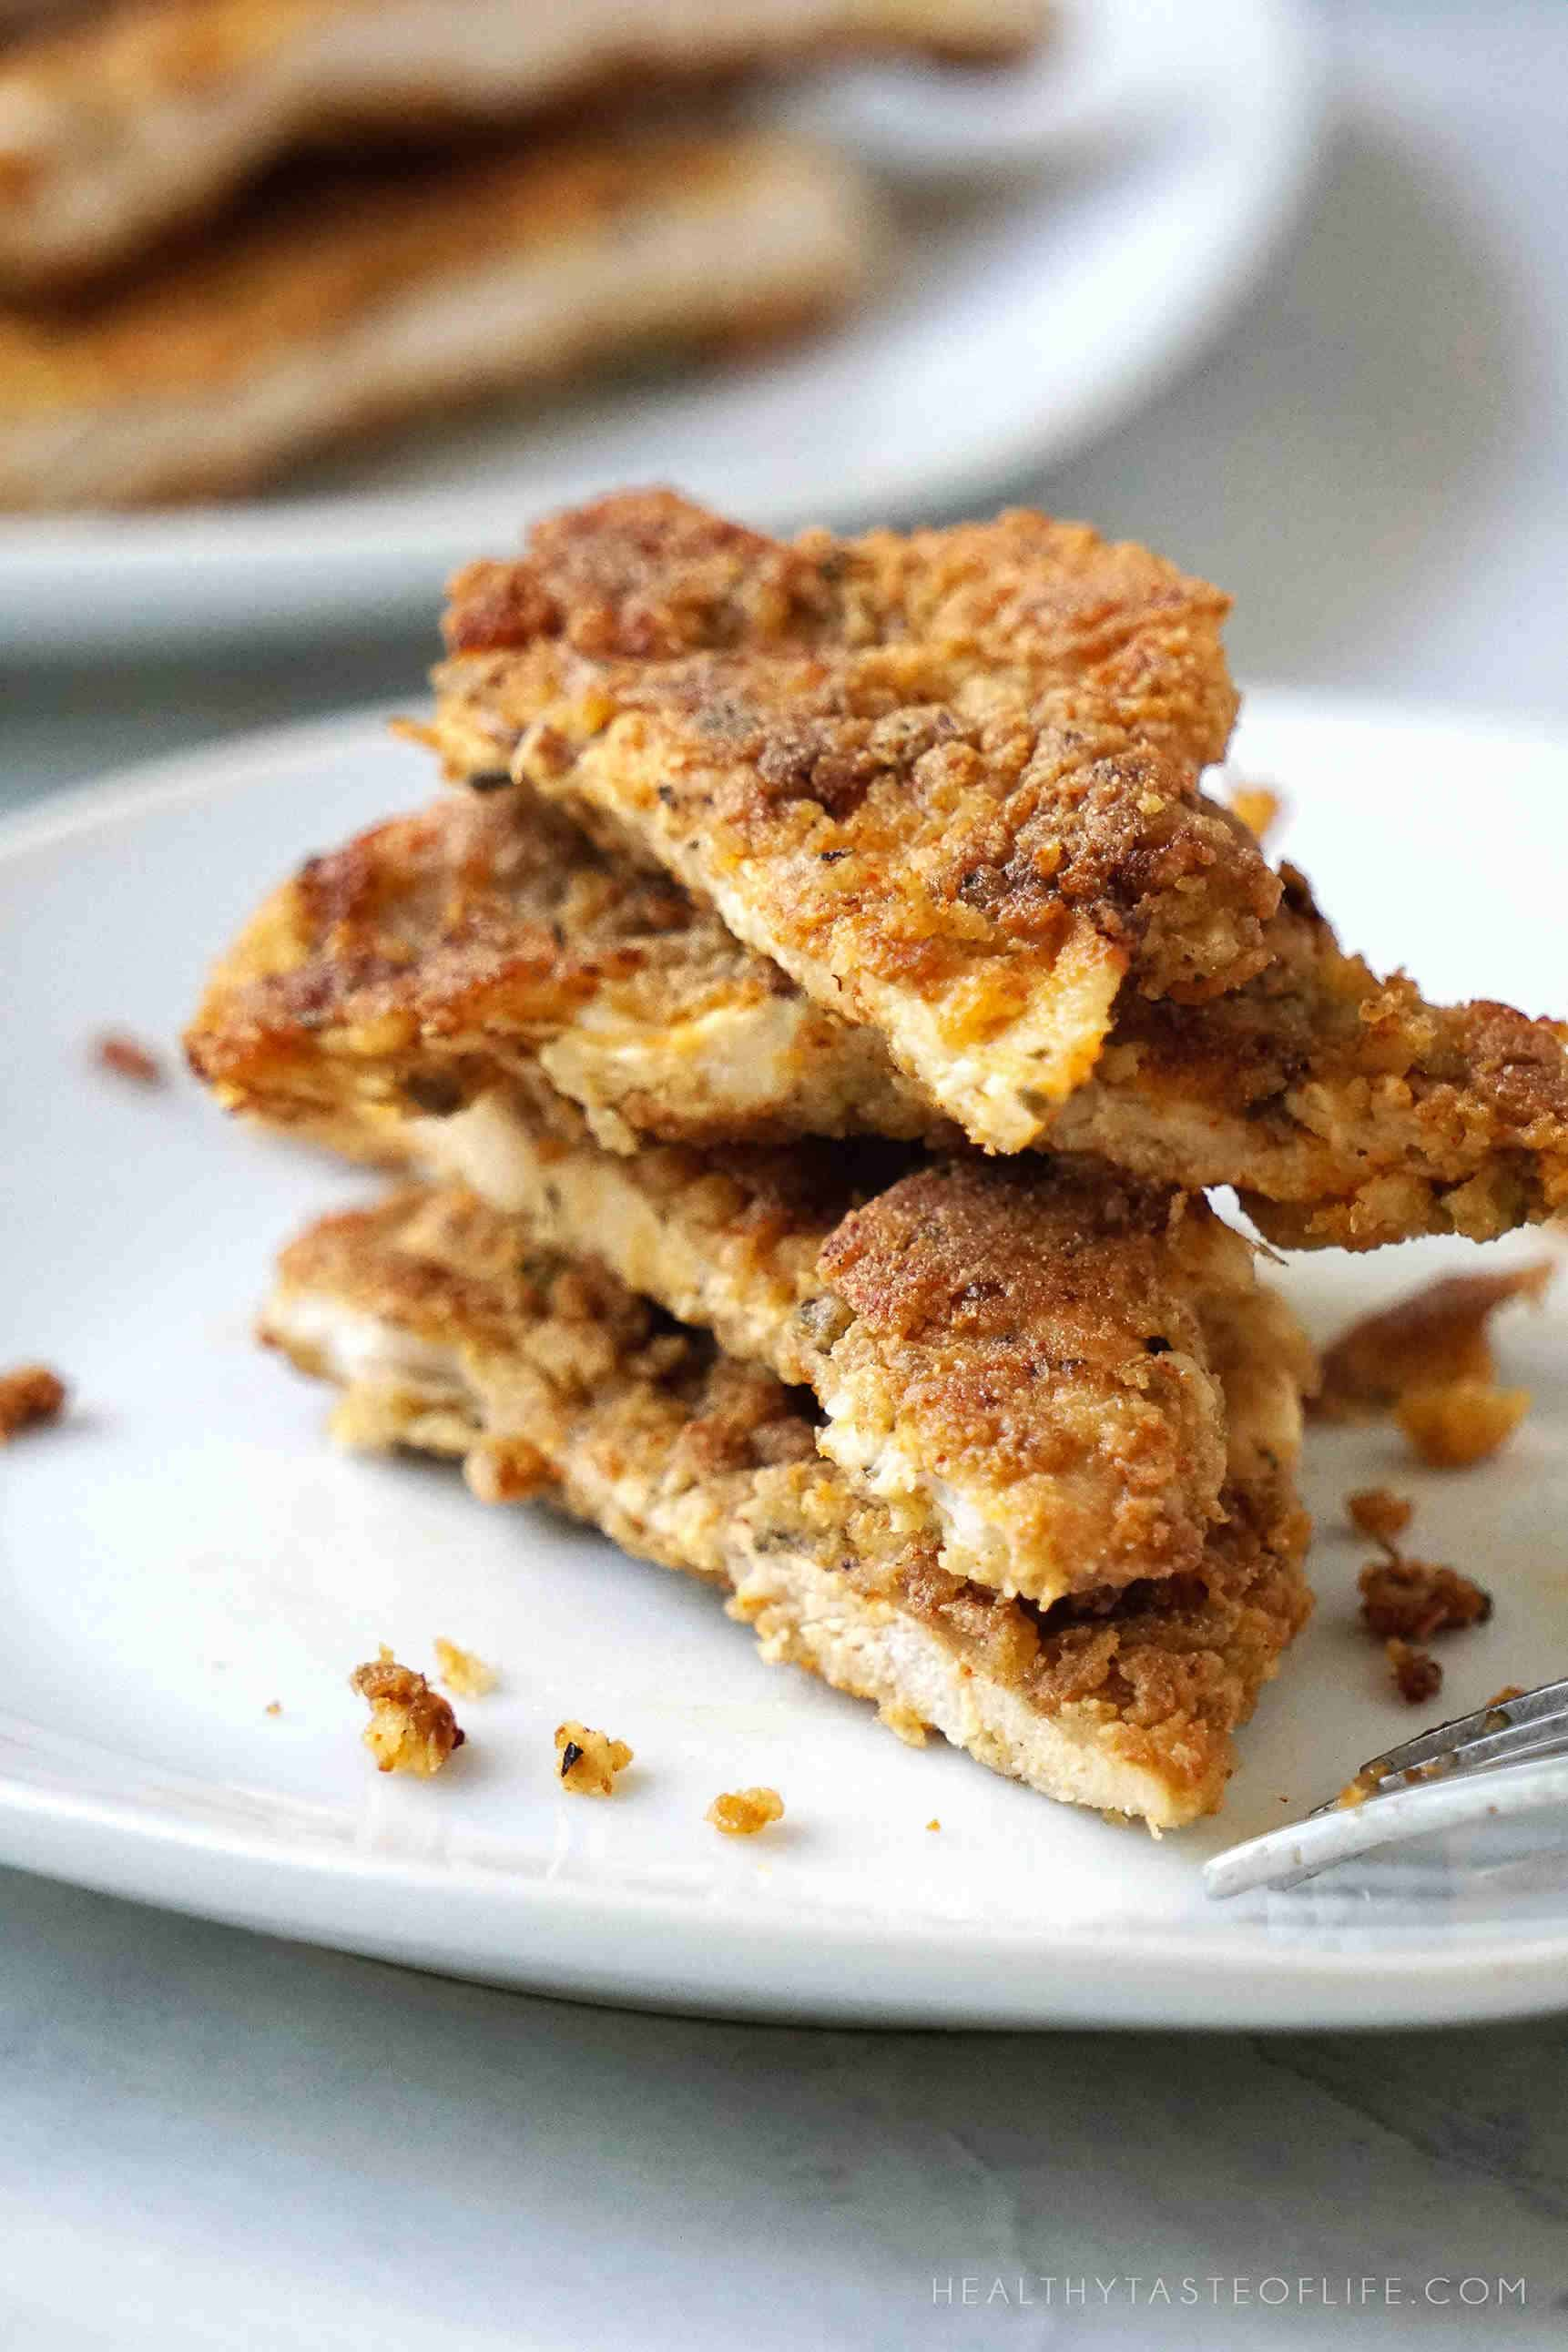 Gluten Free Chicken cutlets without eggs coated in a mustard mixture and pan fried for a golden tasty crust. A quick and easy gluten free, dairy free and egg free recipe to add to your chicken dinner collection!